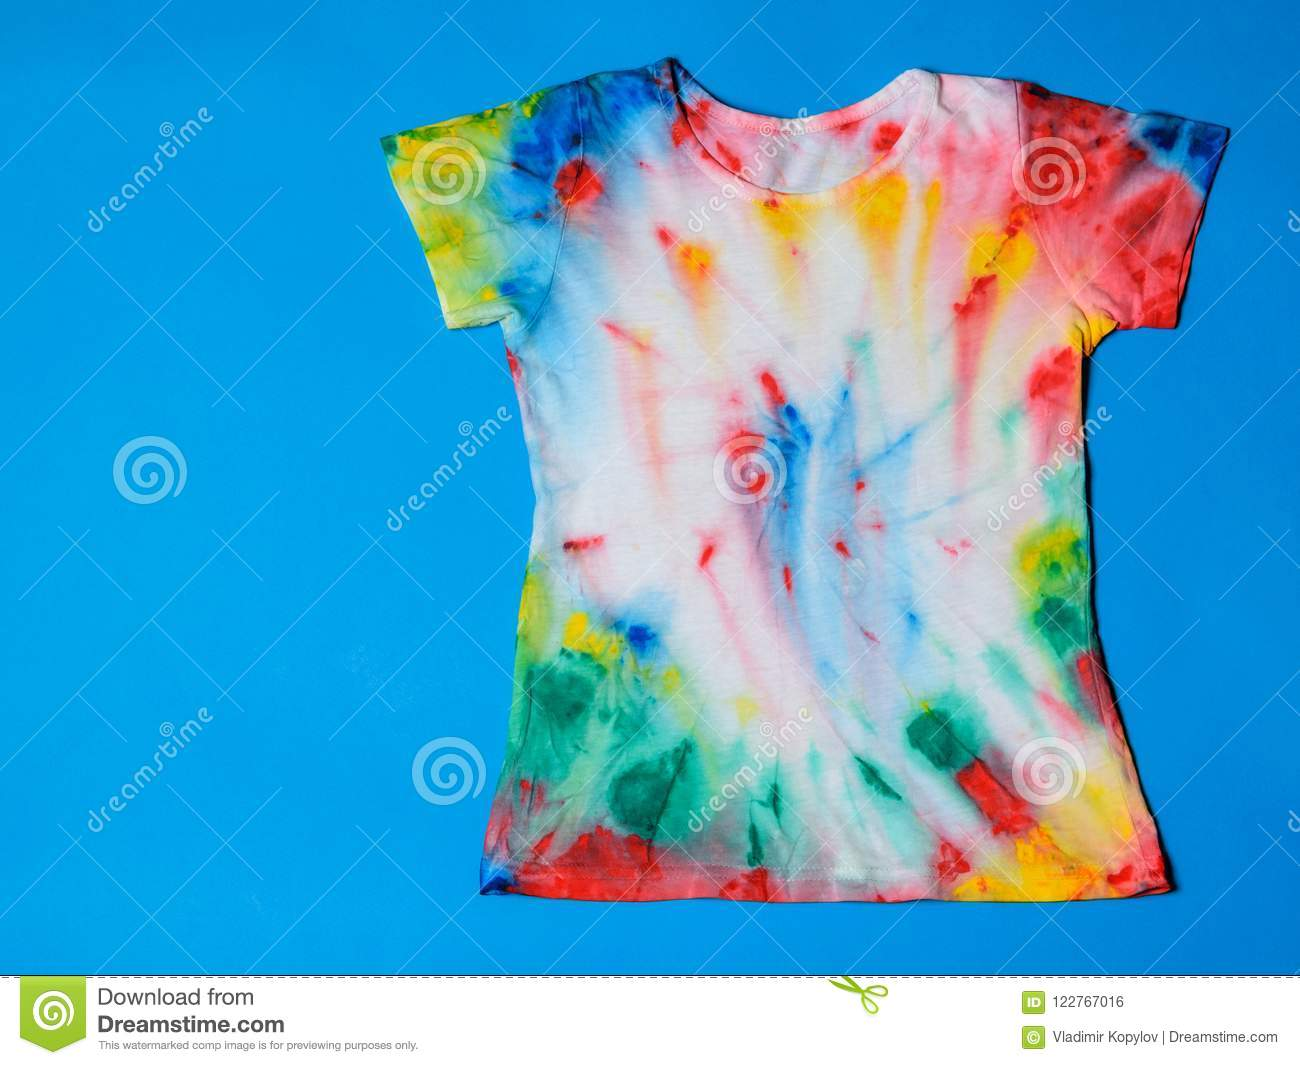 1914a594 T-shirt painted in tie dye style on a blue background. Flat lay. Place for  text.